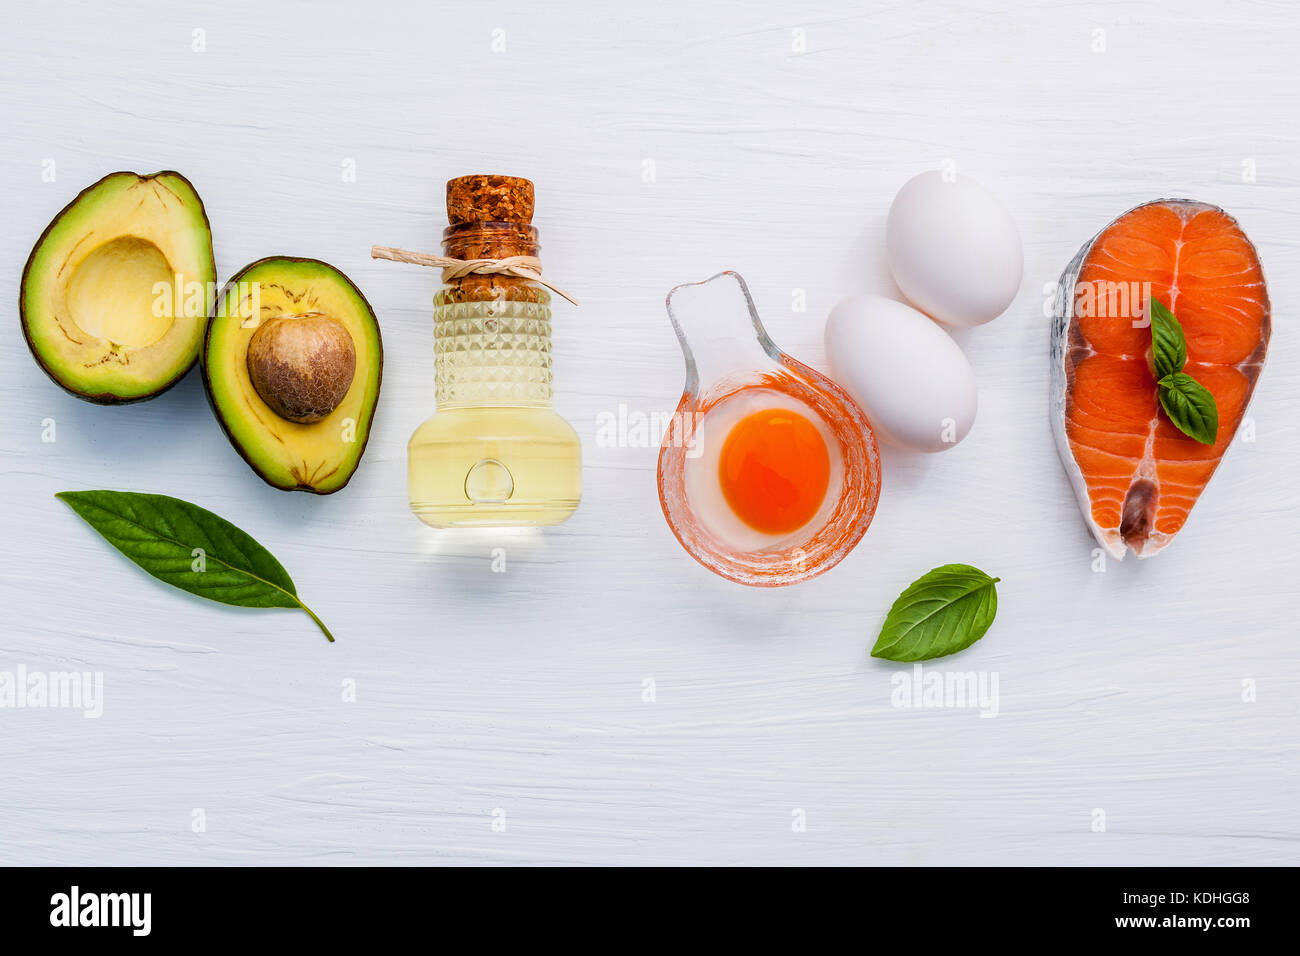 Selection food sources of omega 3 . Super food high omega 3 and unsaturated fats for healthy food. Halve avocado - Stock Image